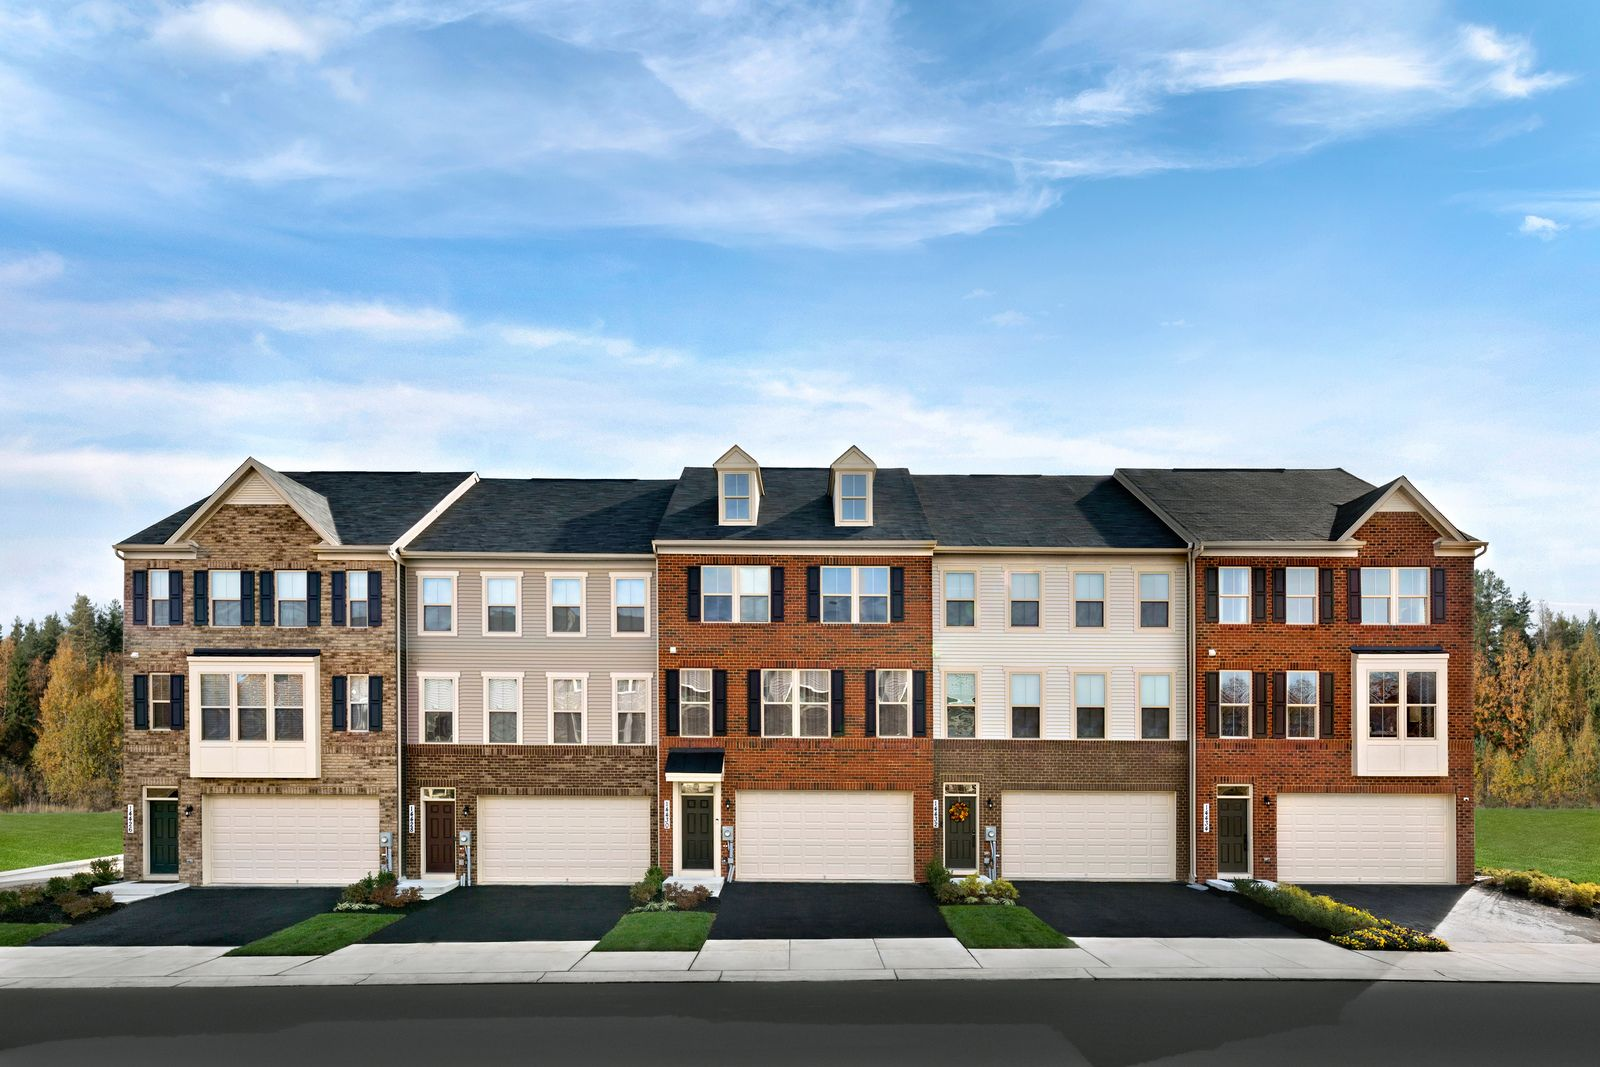 WELCOME TO WESTCHESTER SQUARE - WALDORF'S LUXURY TOWNHOME COMMUNITY:A luxury resort-style community, spacious single-family-sized townhomes, and no lawn maintenance!Click HERE to schedule your visit today!